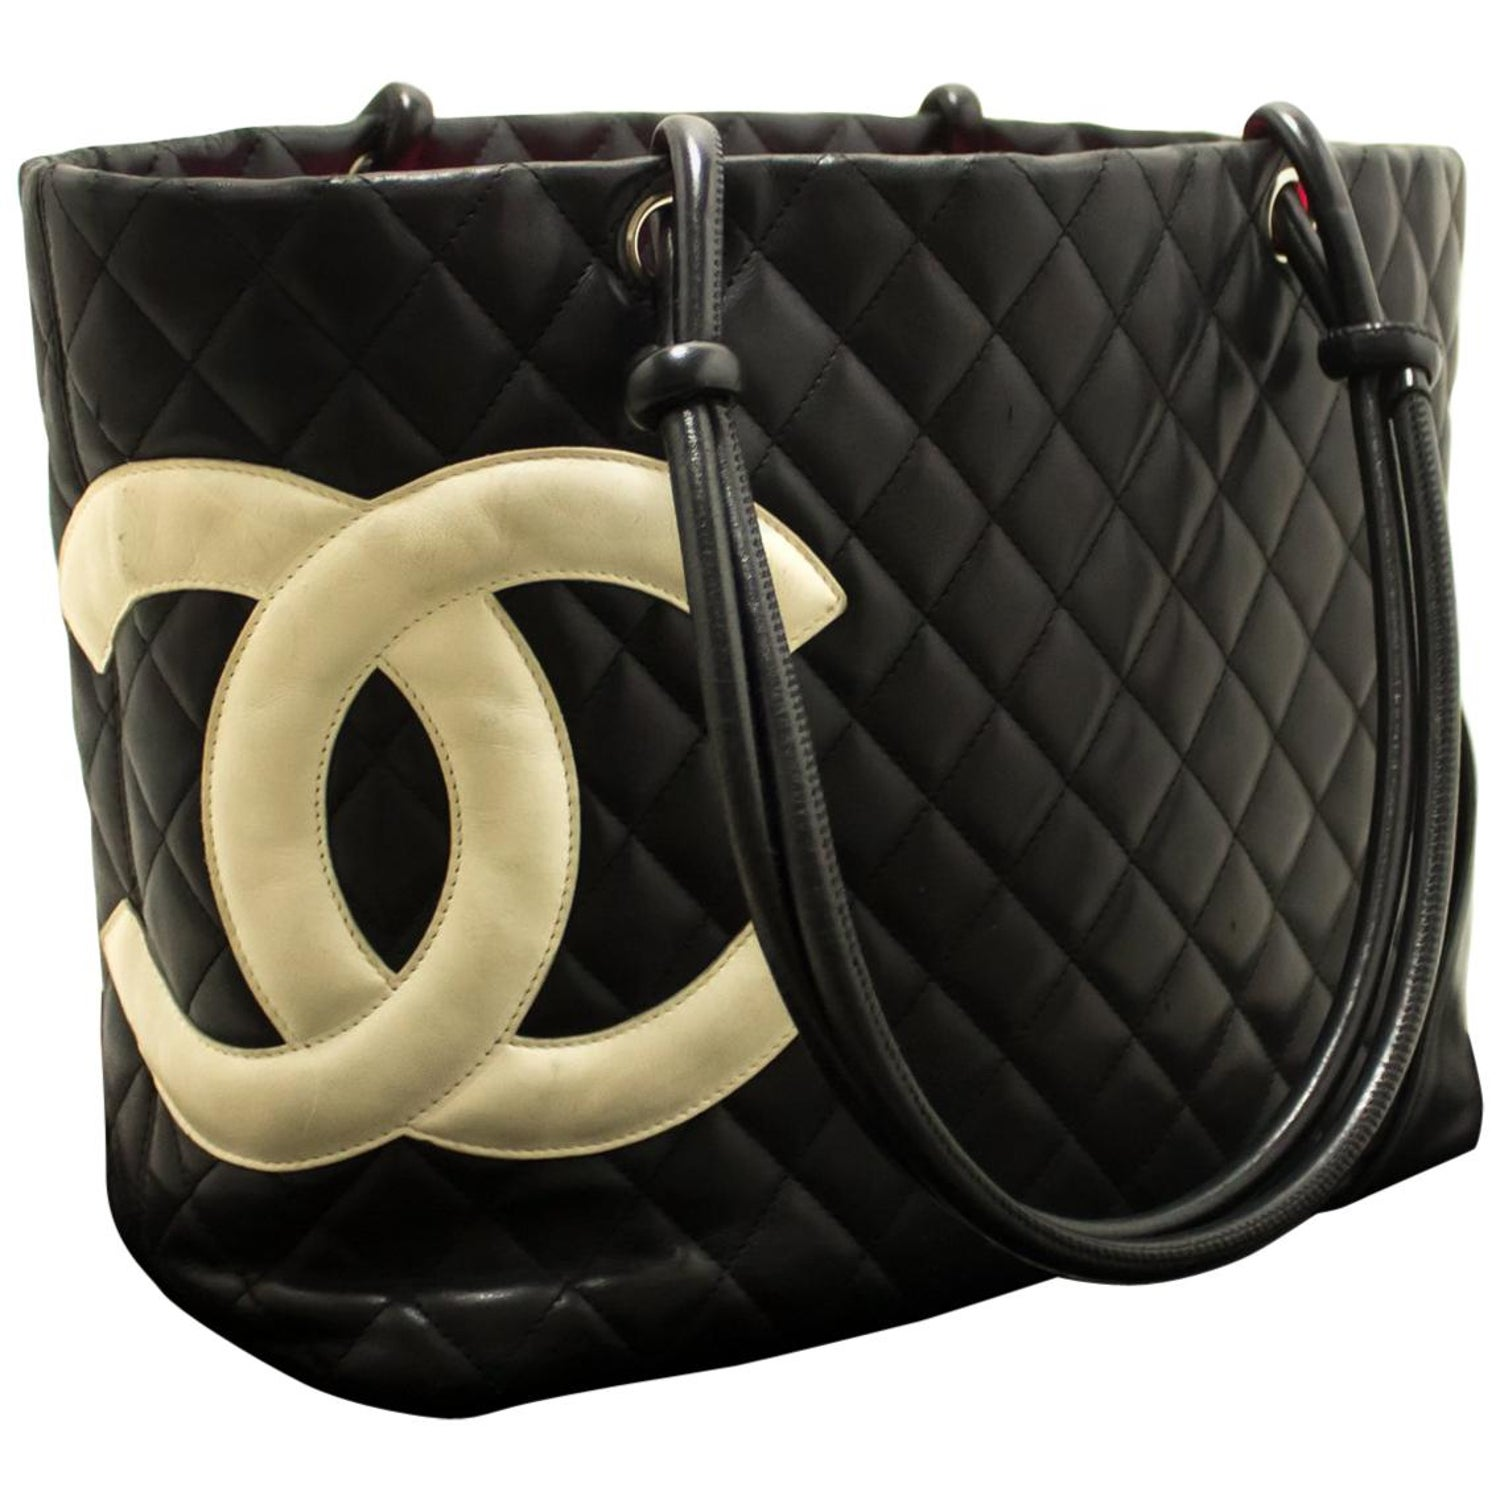 f06ea92f4121 CHANEL Cambon Tote Large Shoulder Bag Black White Quilted Calfskin For Sale  at 1stdibs